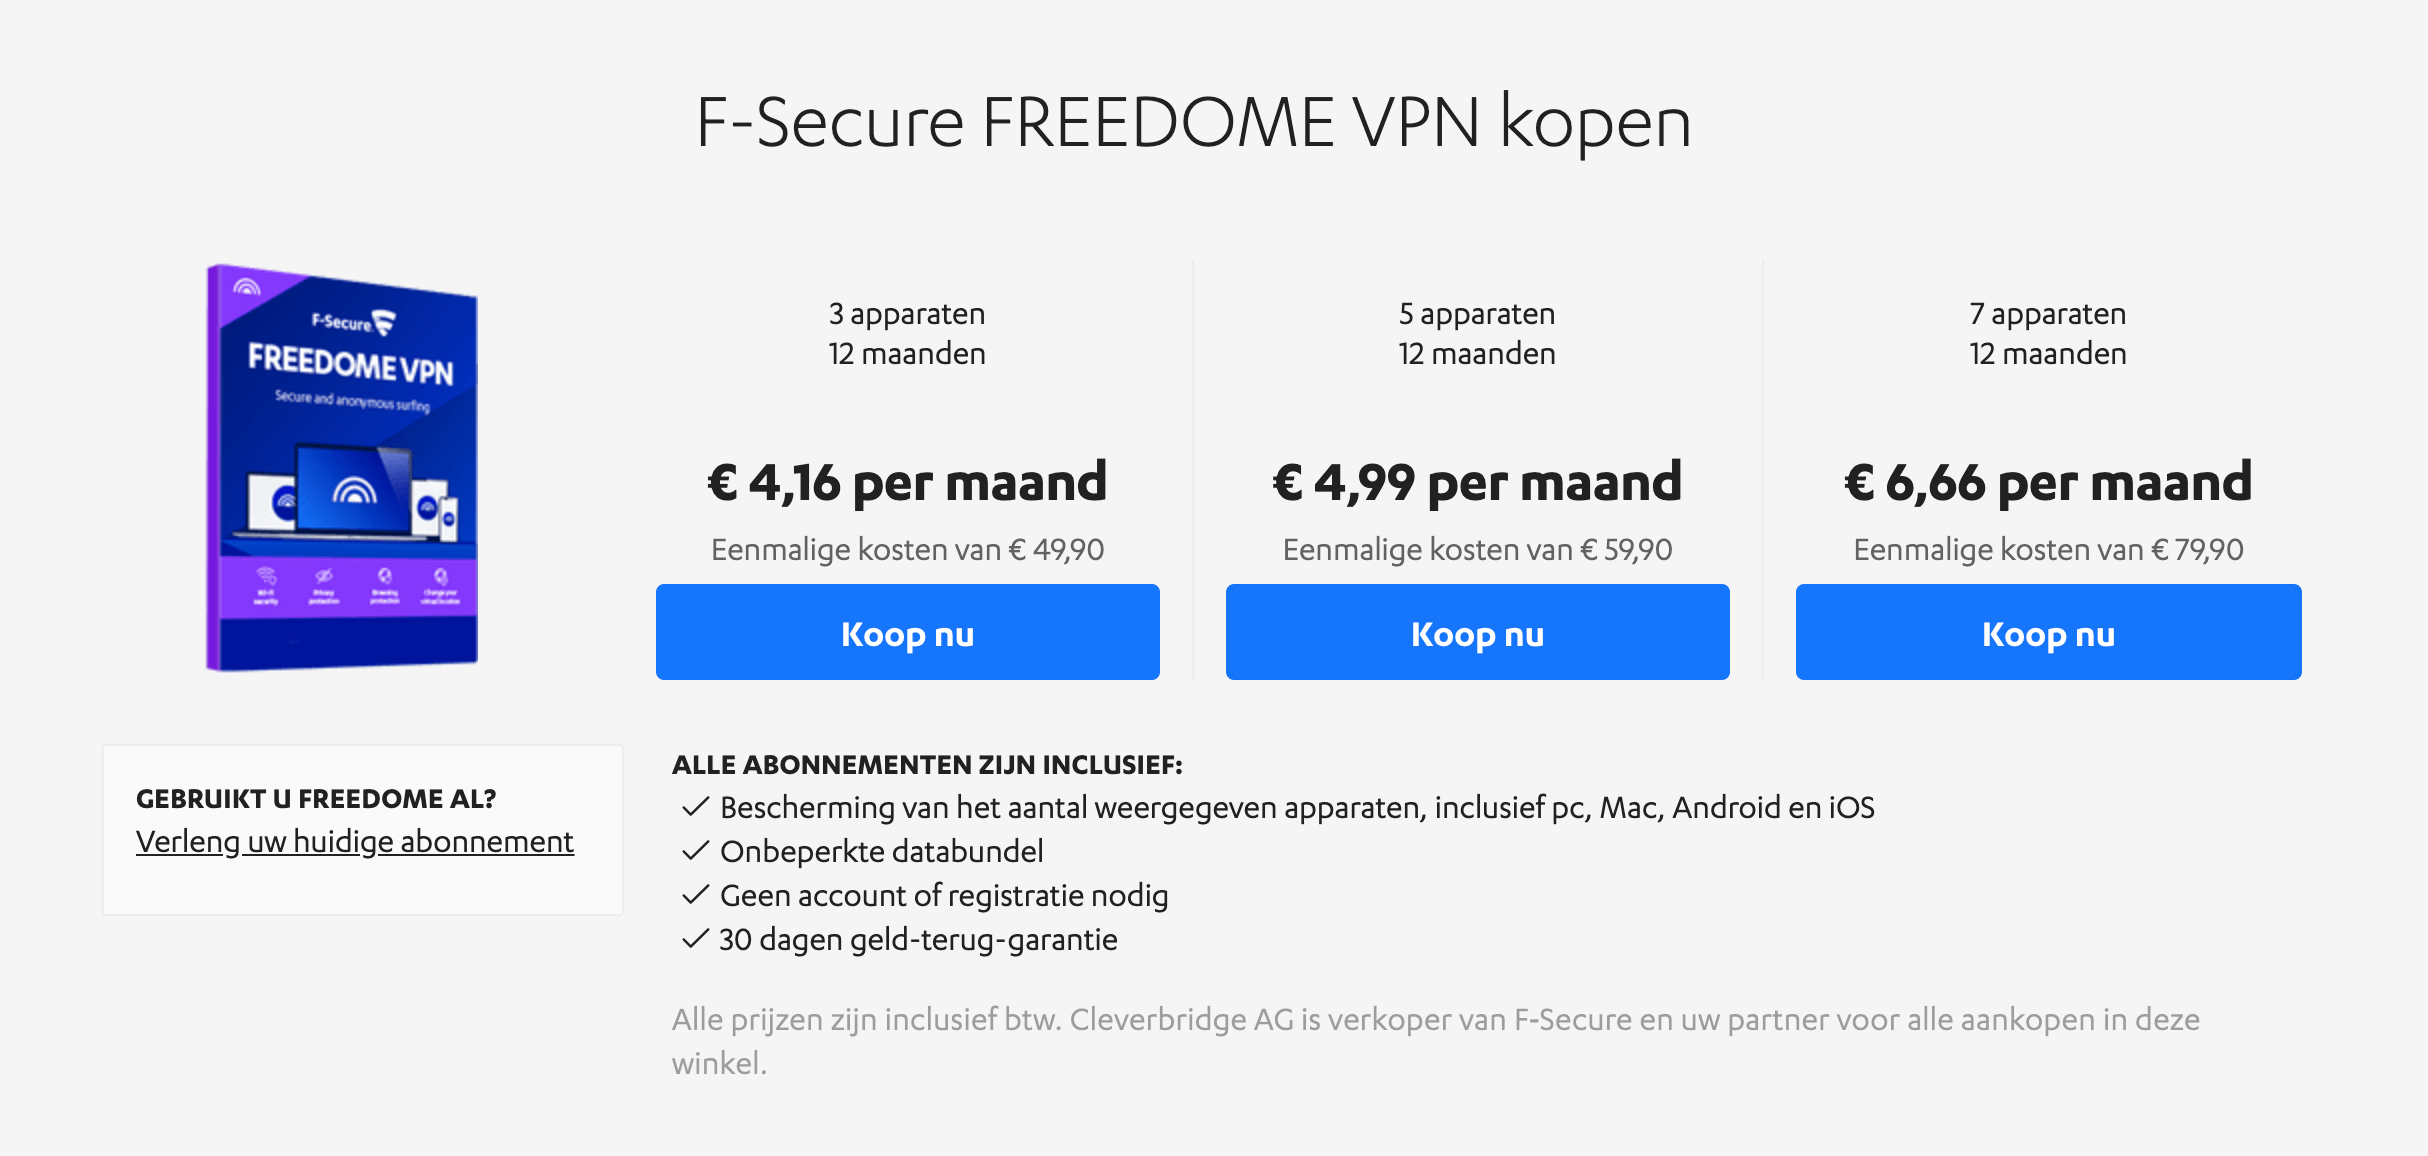 F-Secure Freedome VPN